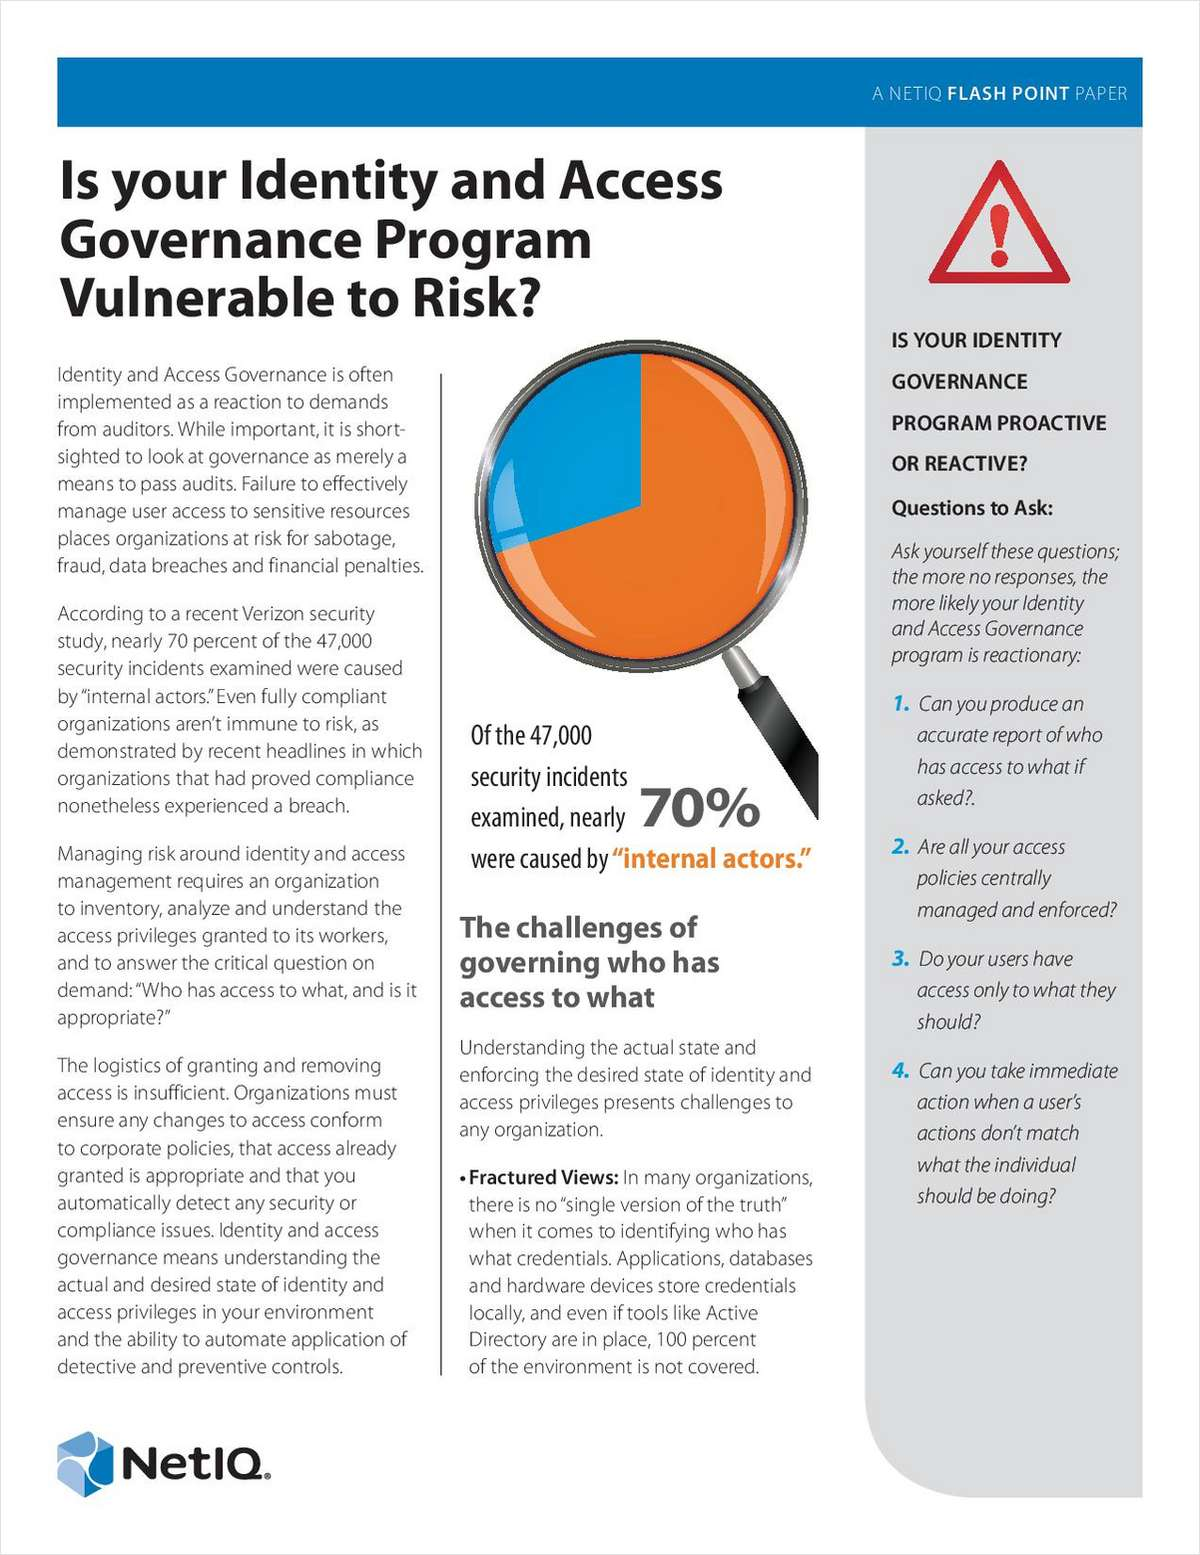 How to Know If Your Identity and Access Governance Program Is Vulnerable to Risk